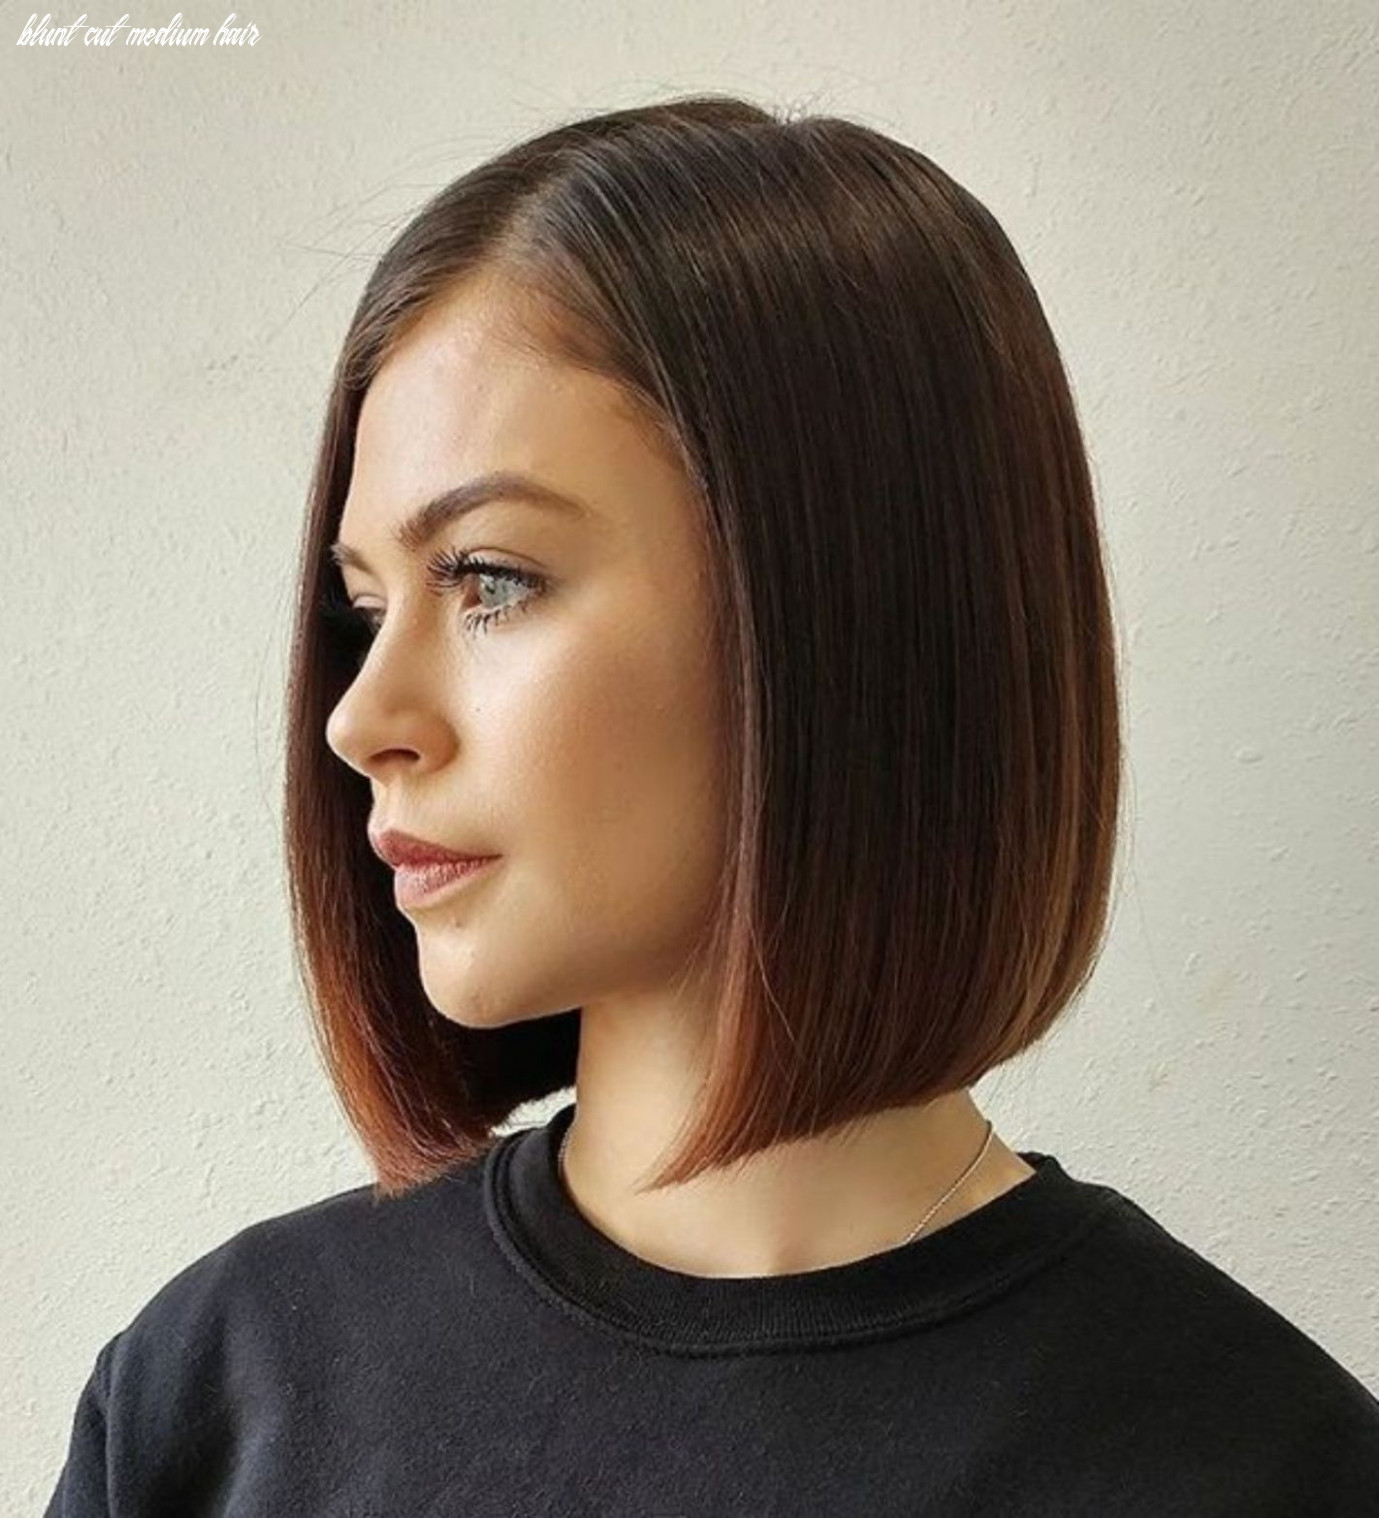 10 spectacular blunt bob hairstyles   blunt bob hairstyles, long